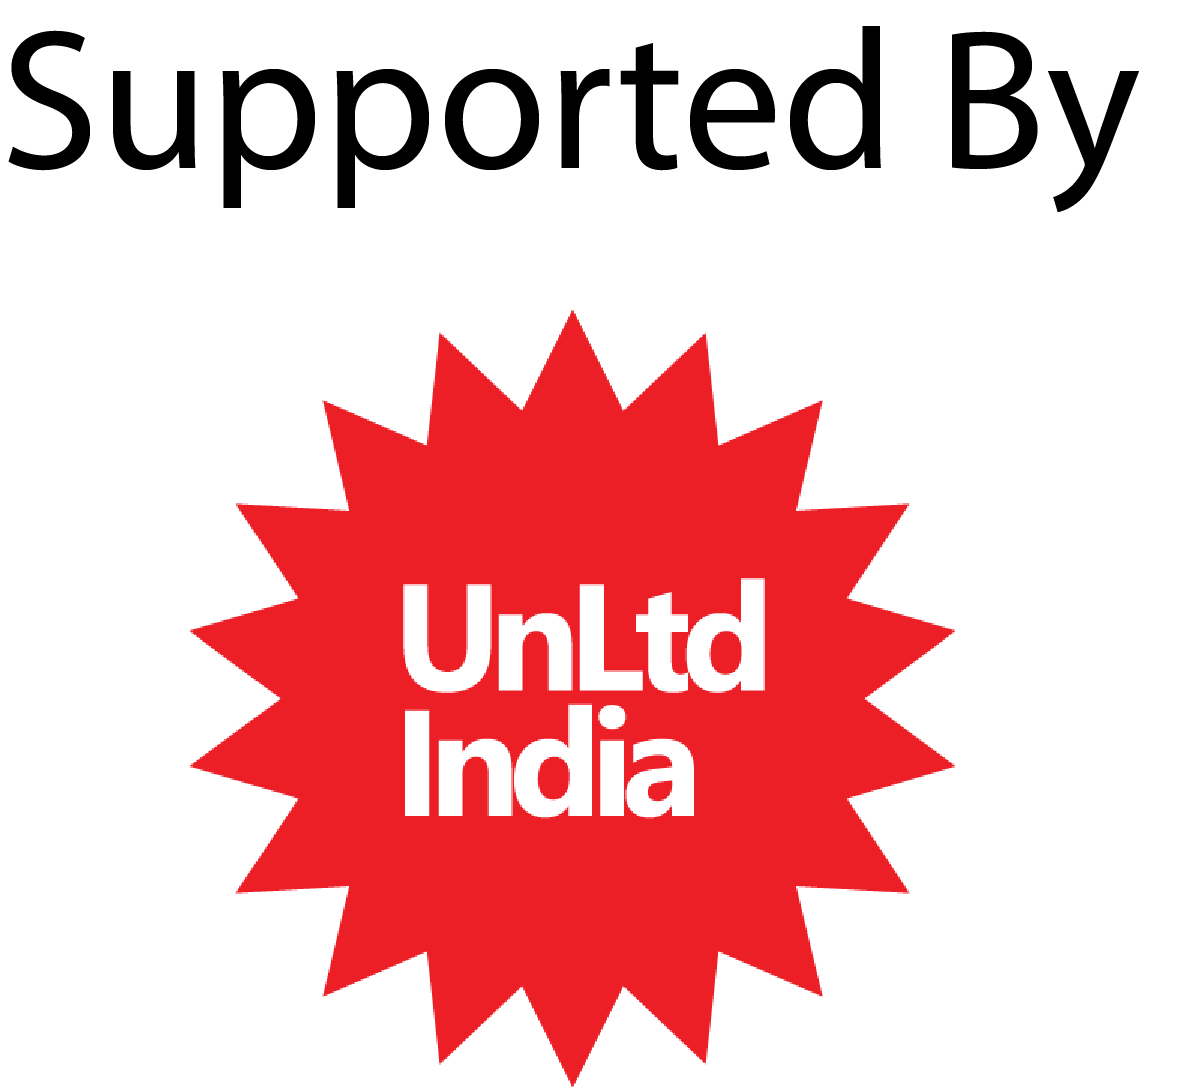 Unlimited_india